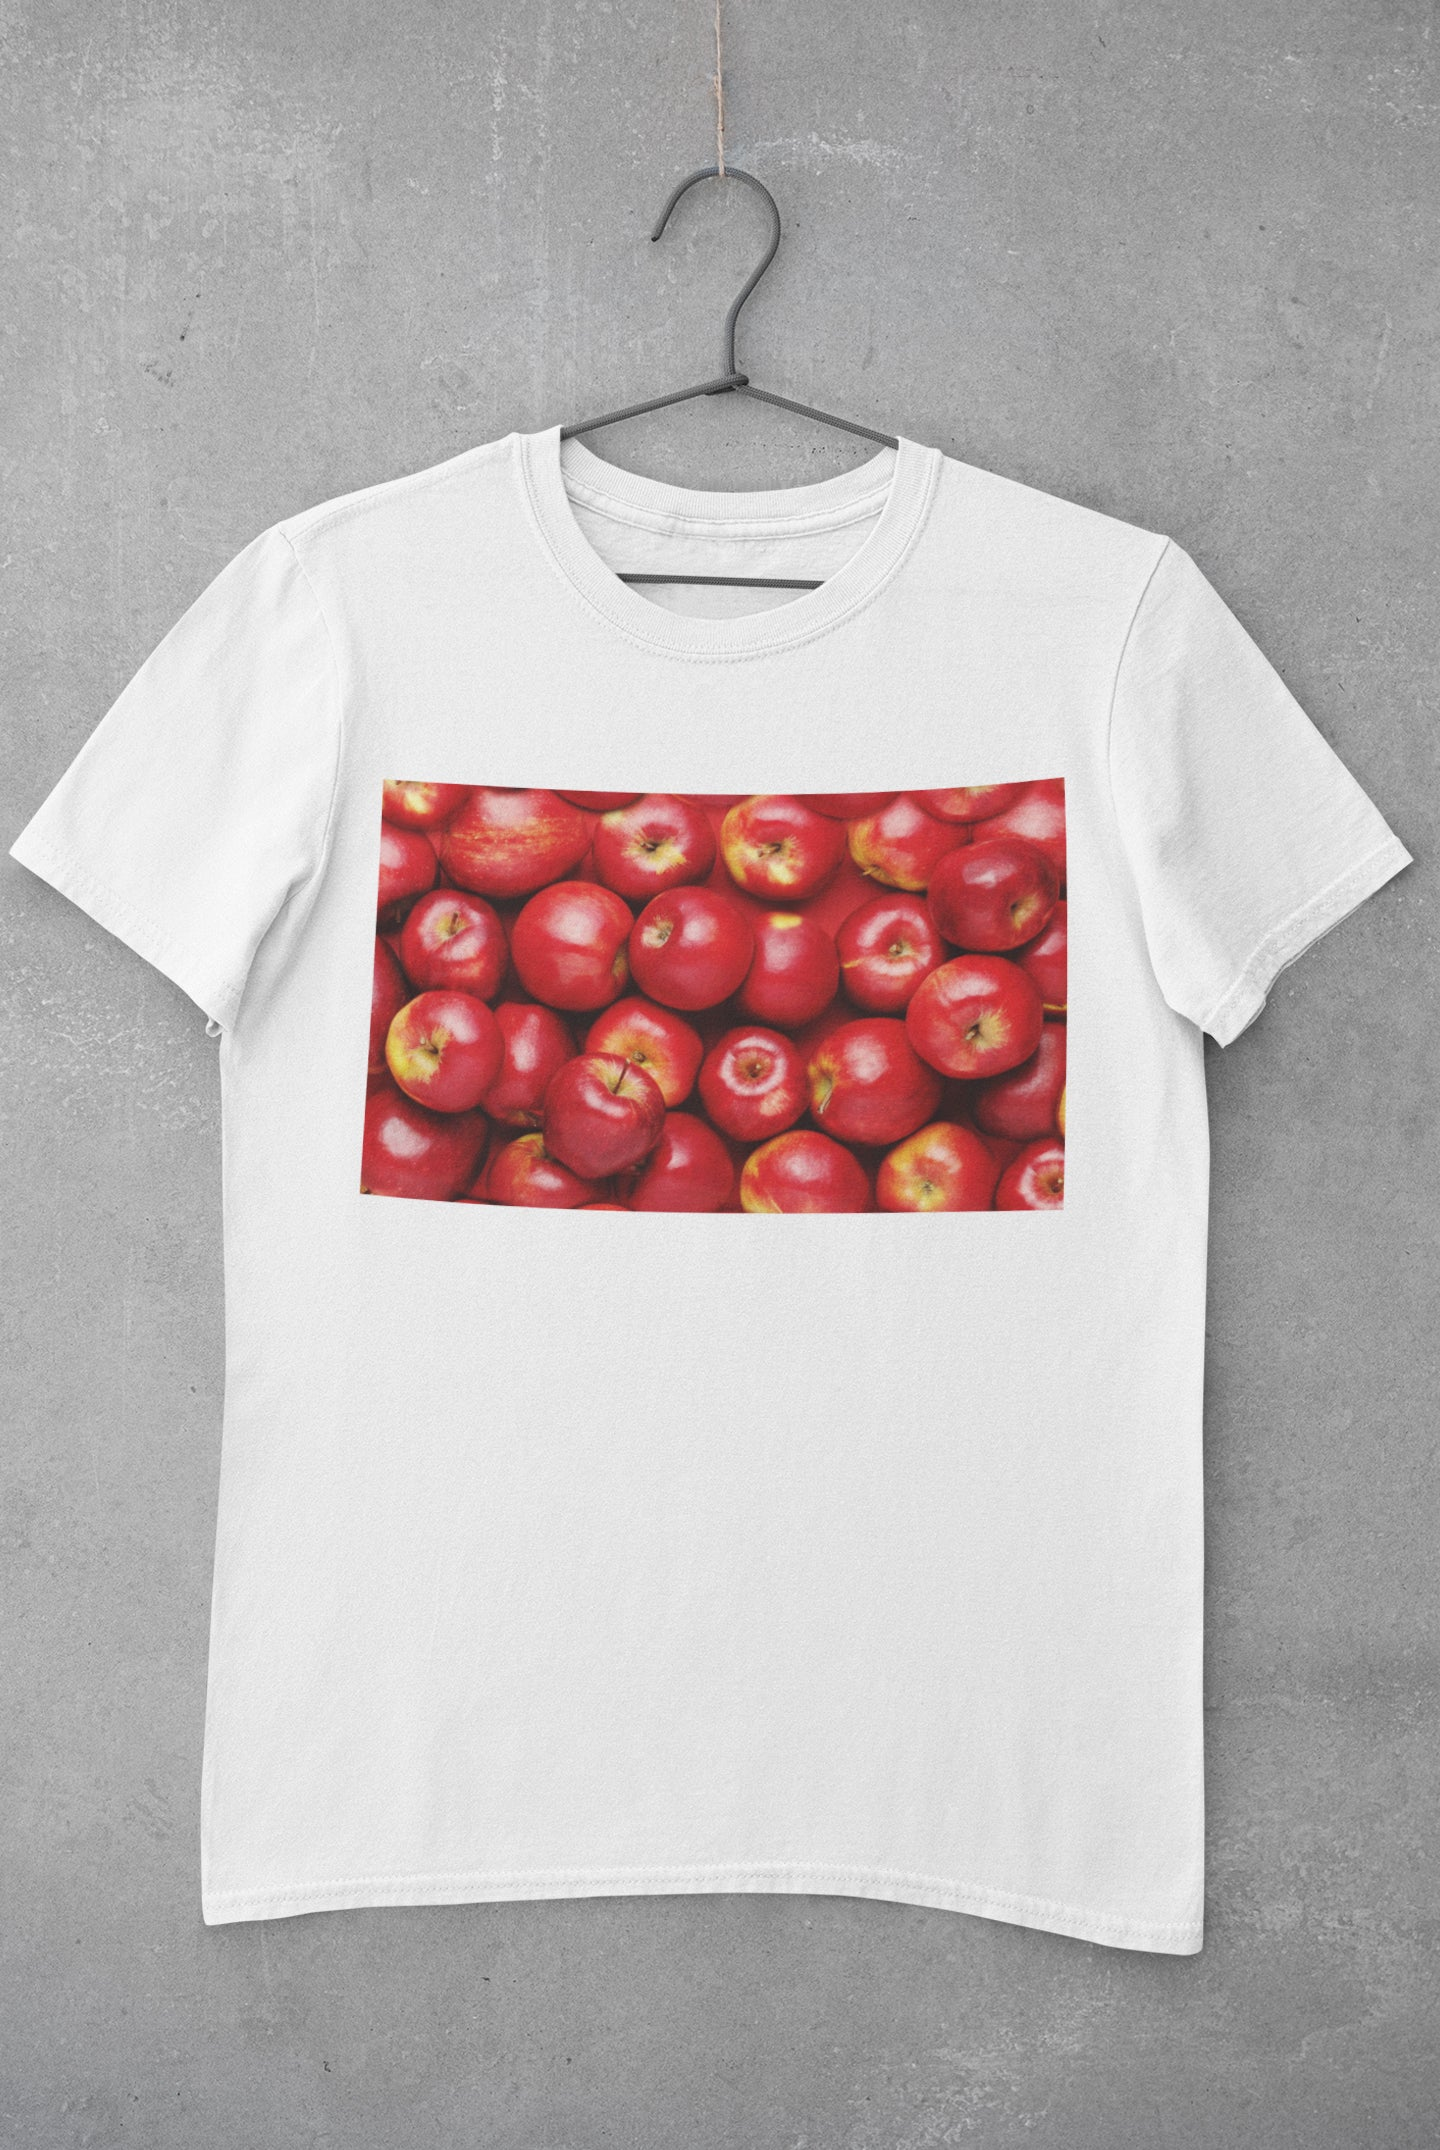 Apple Addicted Tshirt